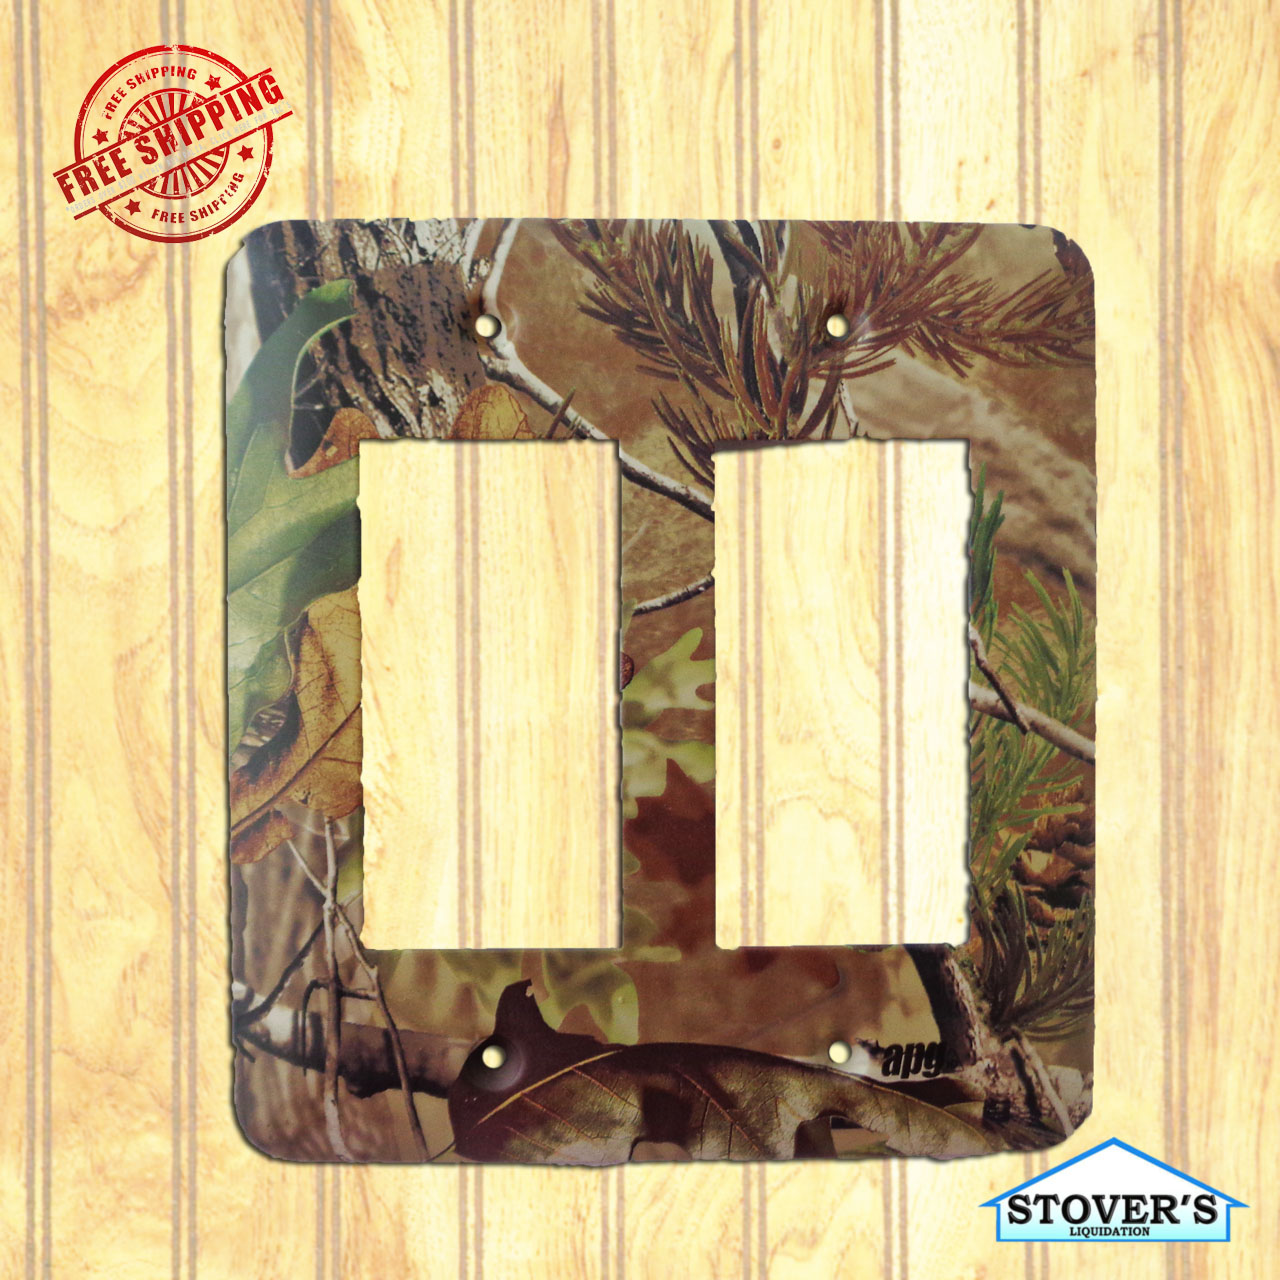 63172-double-rocker-light-switch-plate-outdoors-camo-realtree-apg-hd-stovers-liquidation.jpg